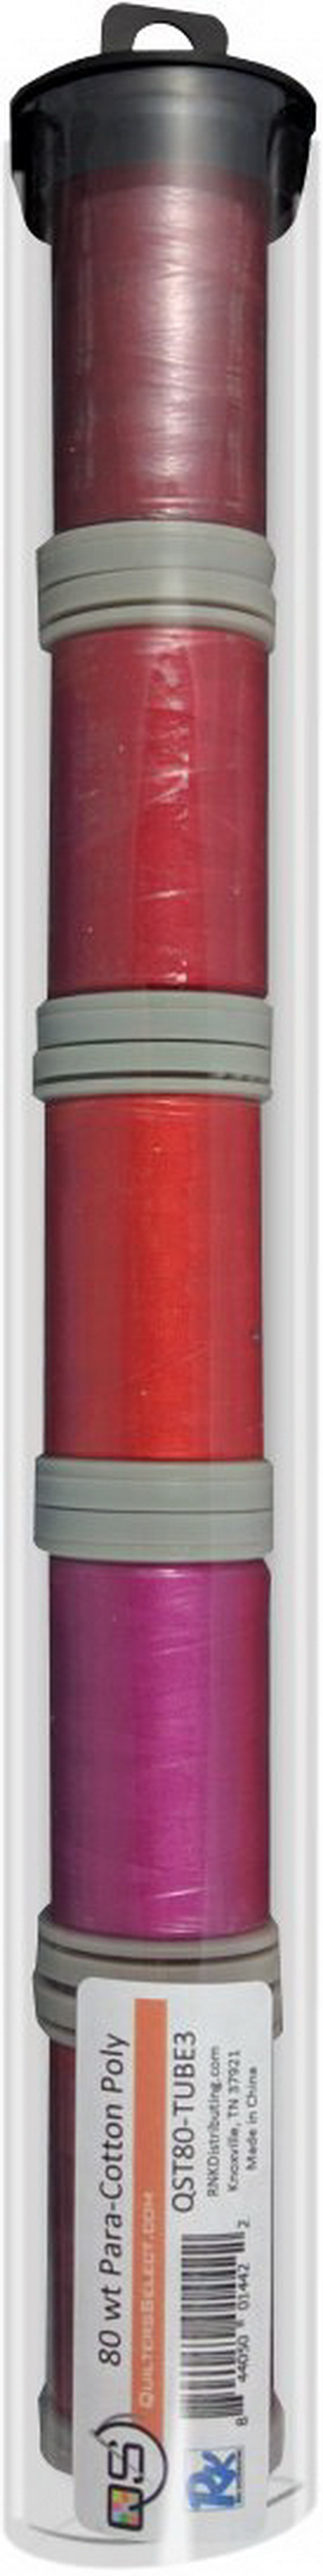 Quilters Select Para-Cotton Polyester Thread 80 Weight Tube Bundle 3